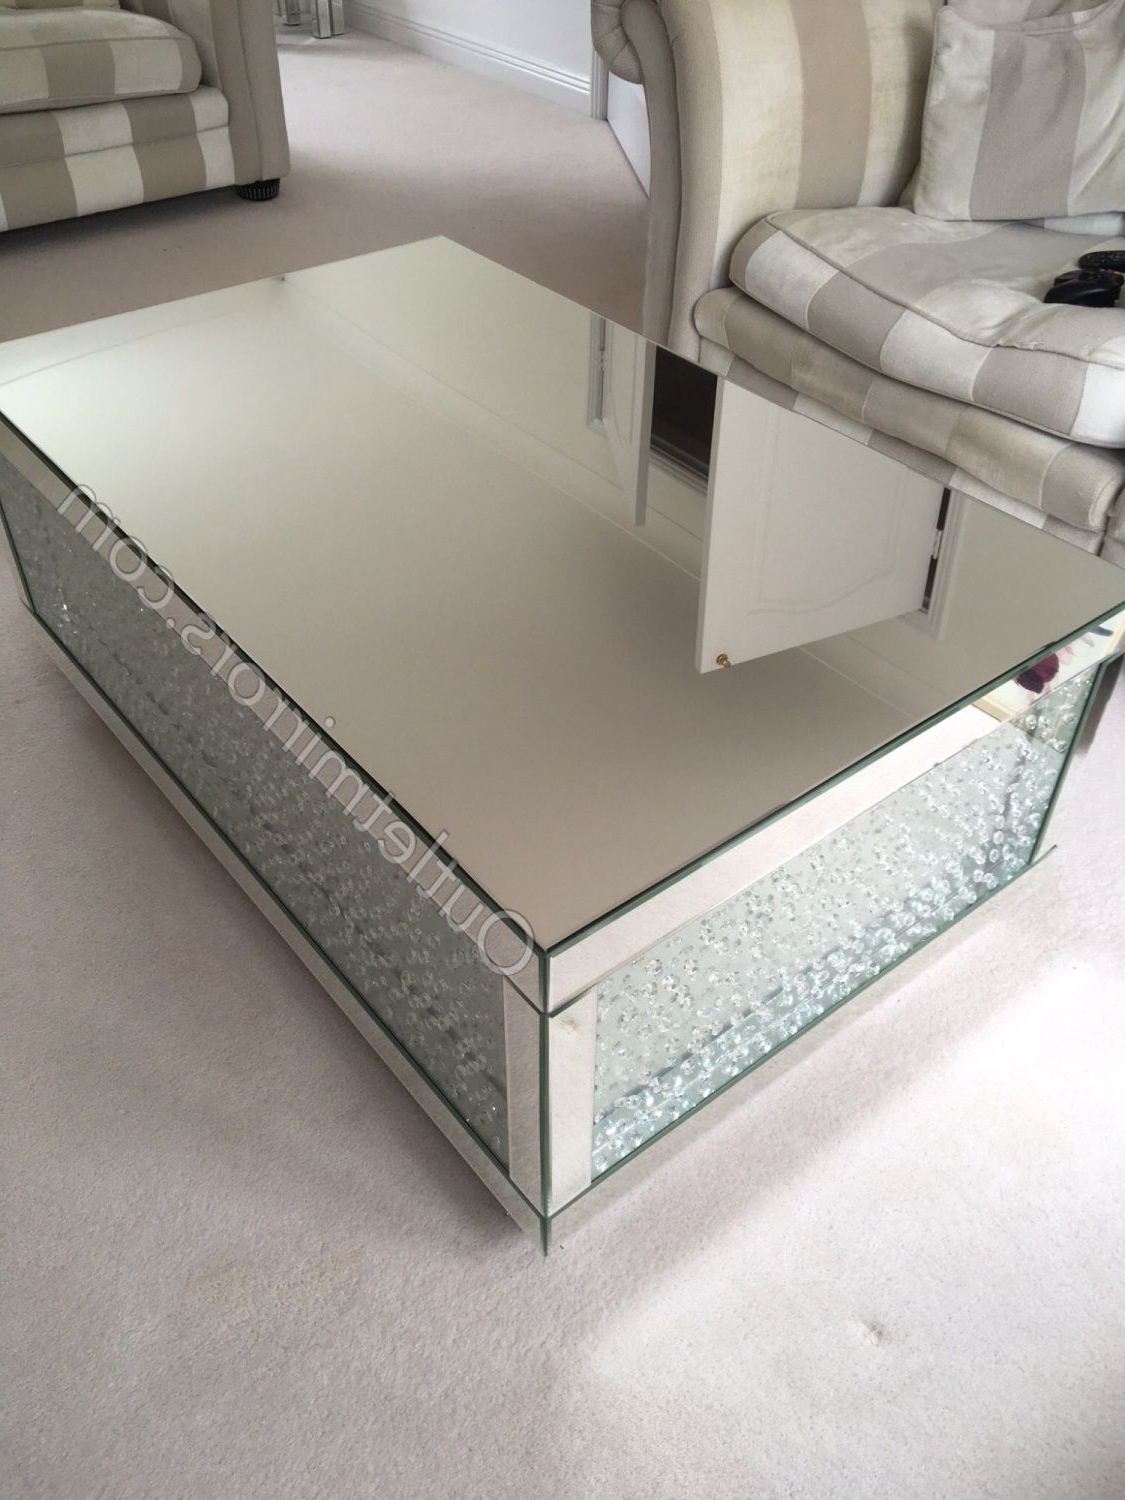 Recent Contemporary Chrome Glass Top And Mirror Shelf Coffee Tables For Decorated With Glass Crystals, Thisbbeautiful Item Is Made (View 16 of 20)